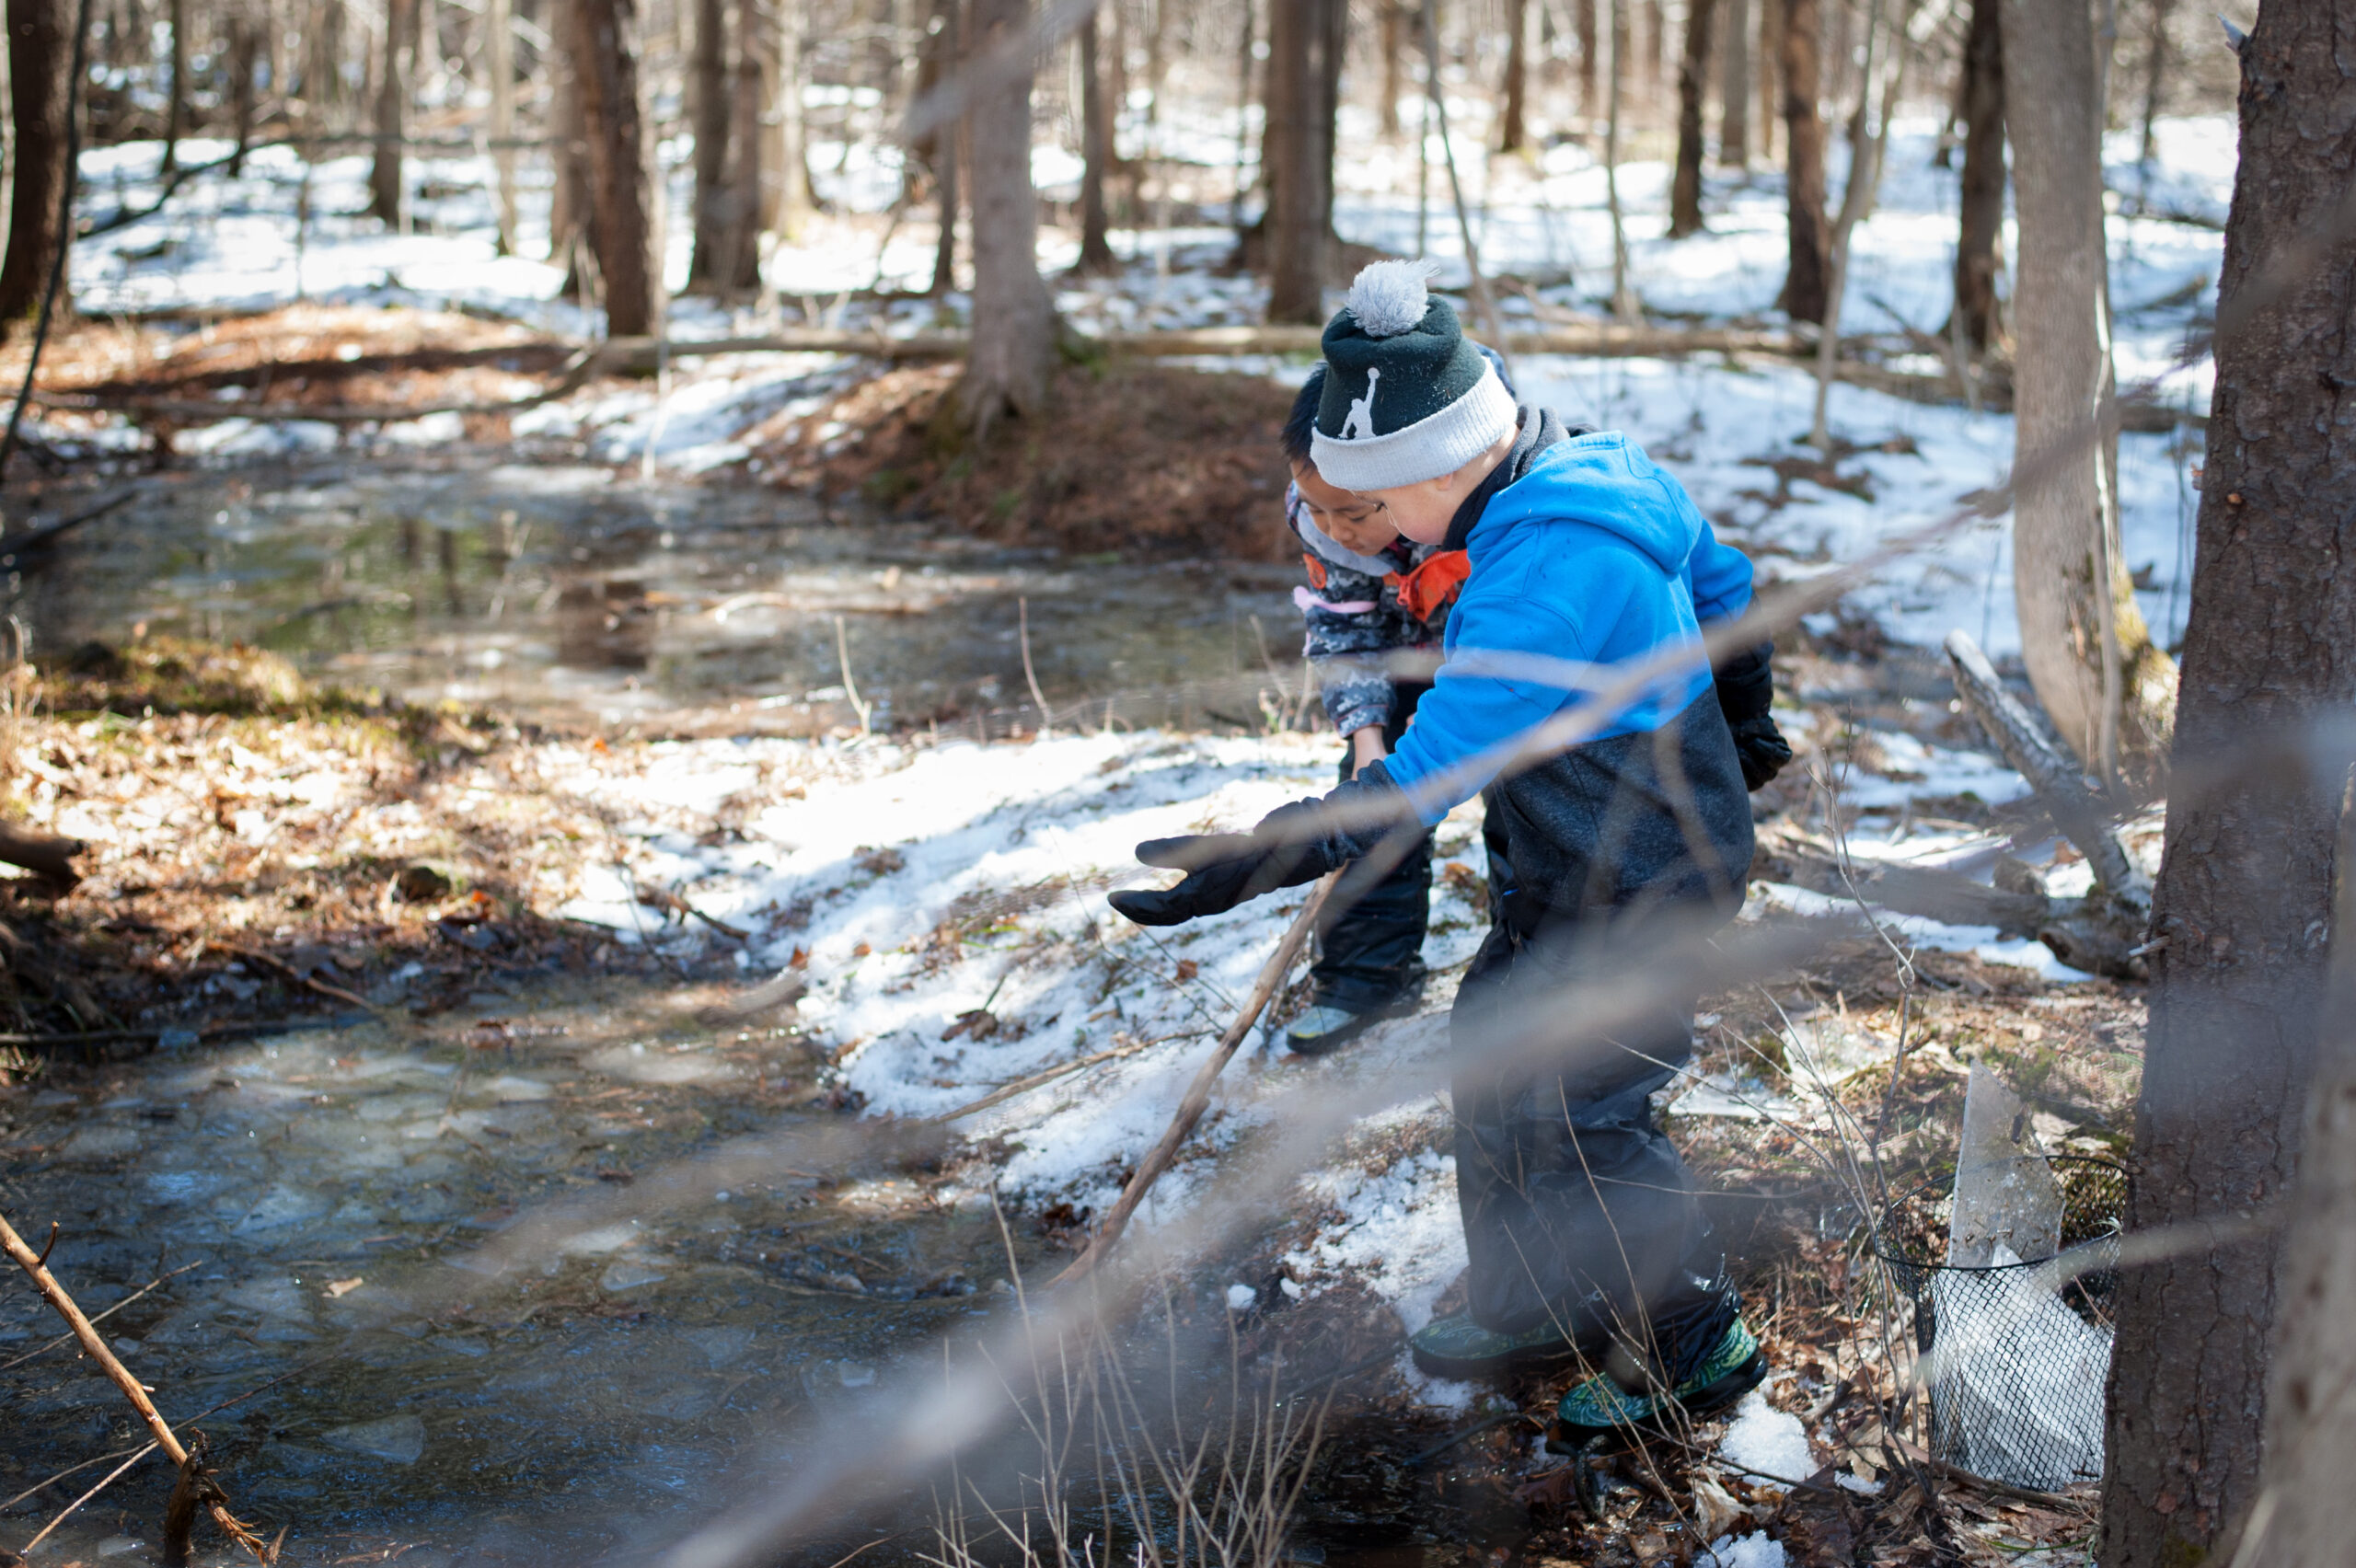 Two boys lean over a frozen pond in a forest during spring